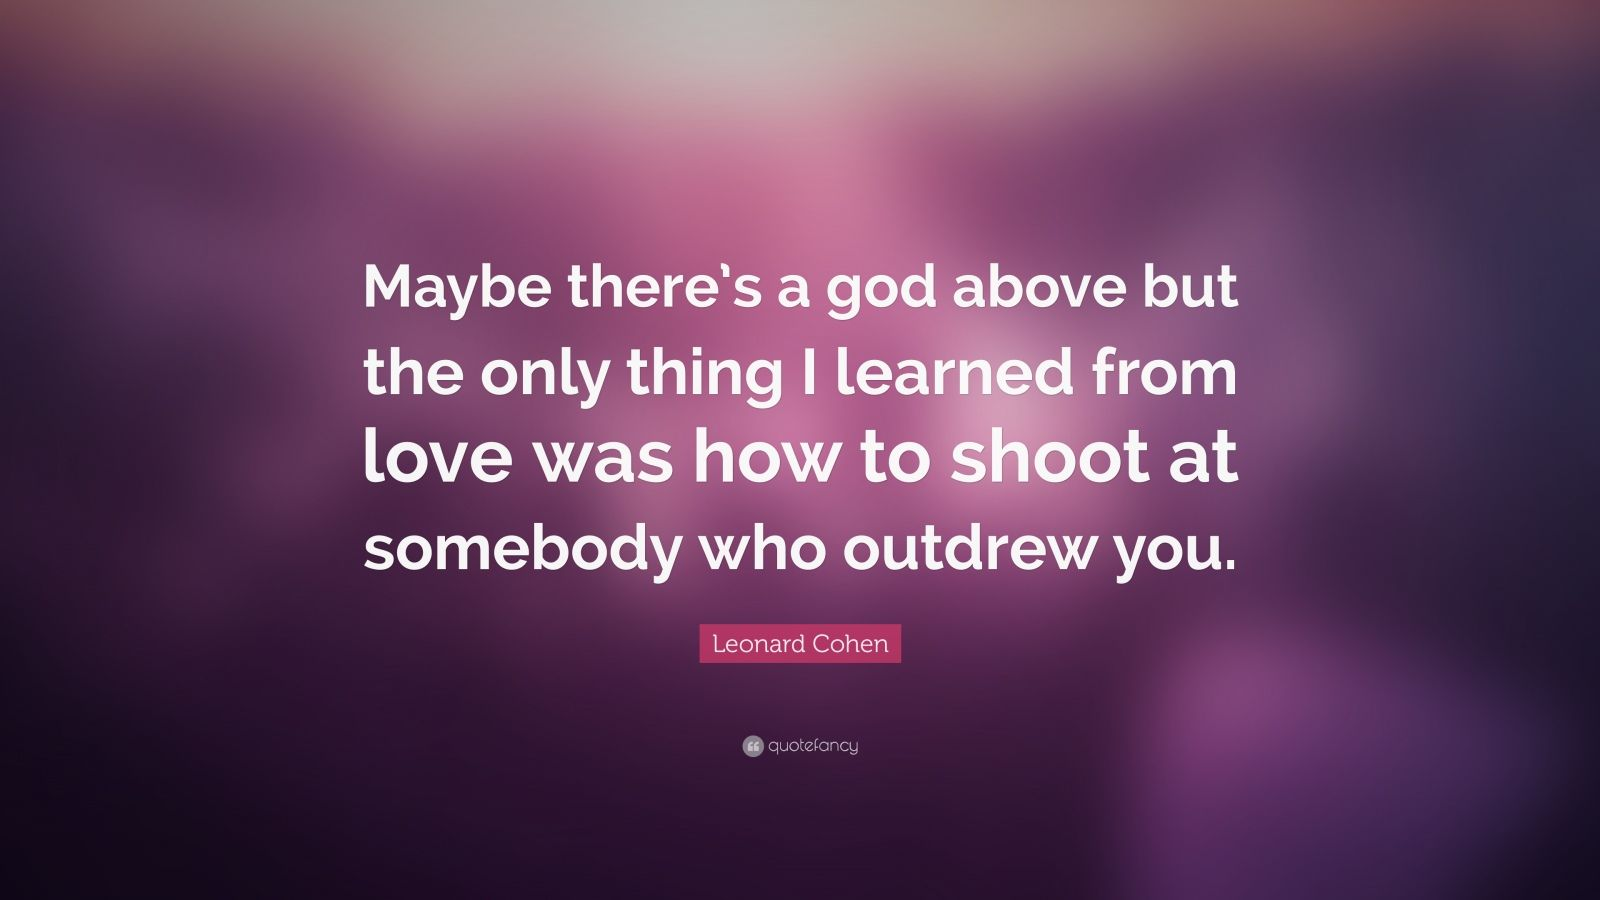 """Leonard Cohen Quote: """"Maybe there's a god above but the only thing I learned from love was how to shoot at somebody who outdrew you."""""""